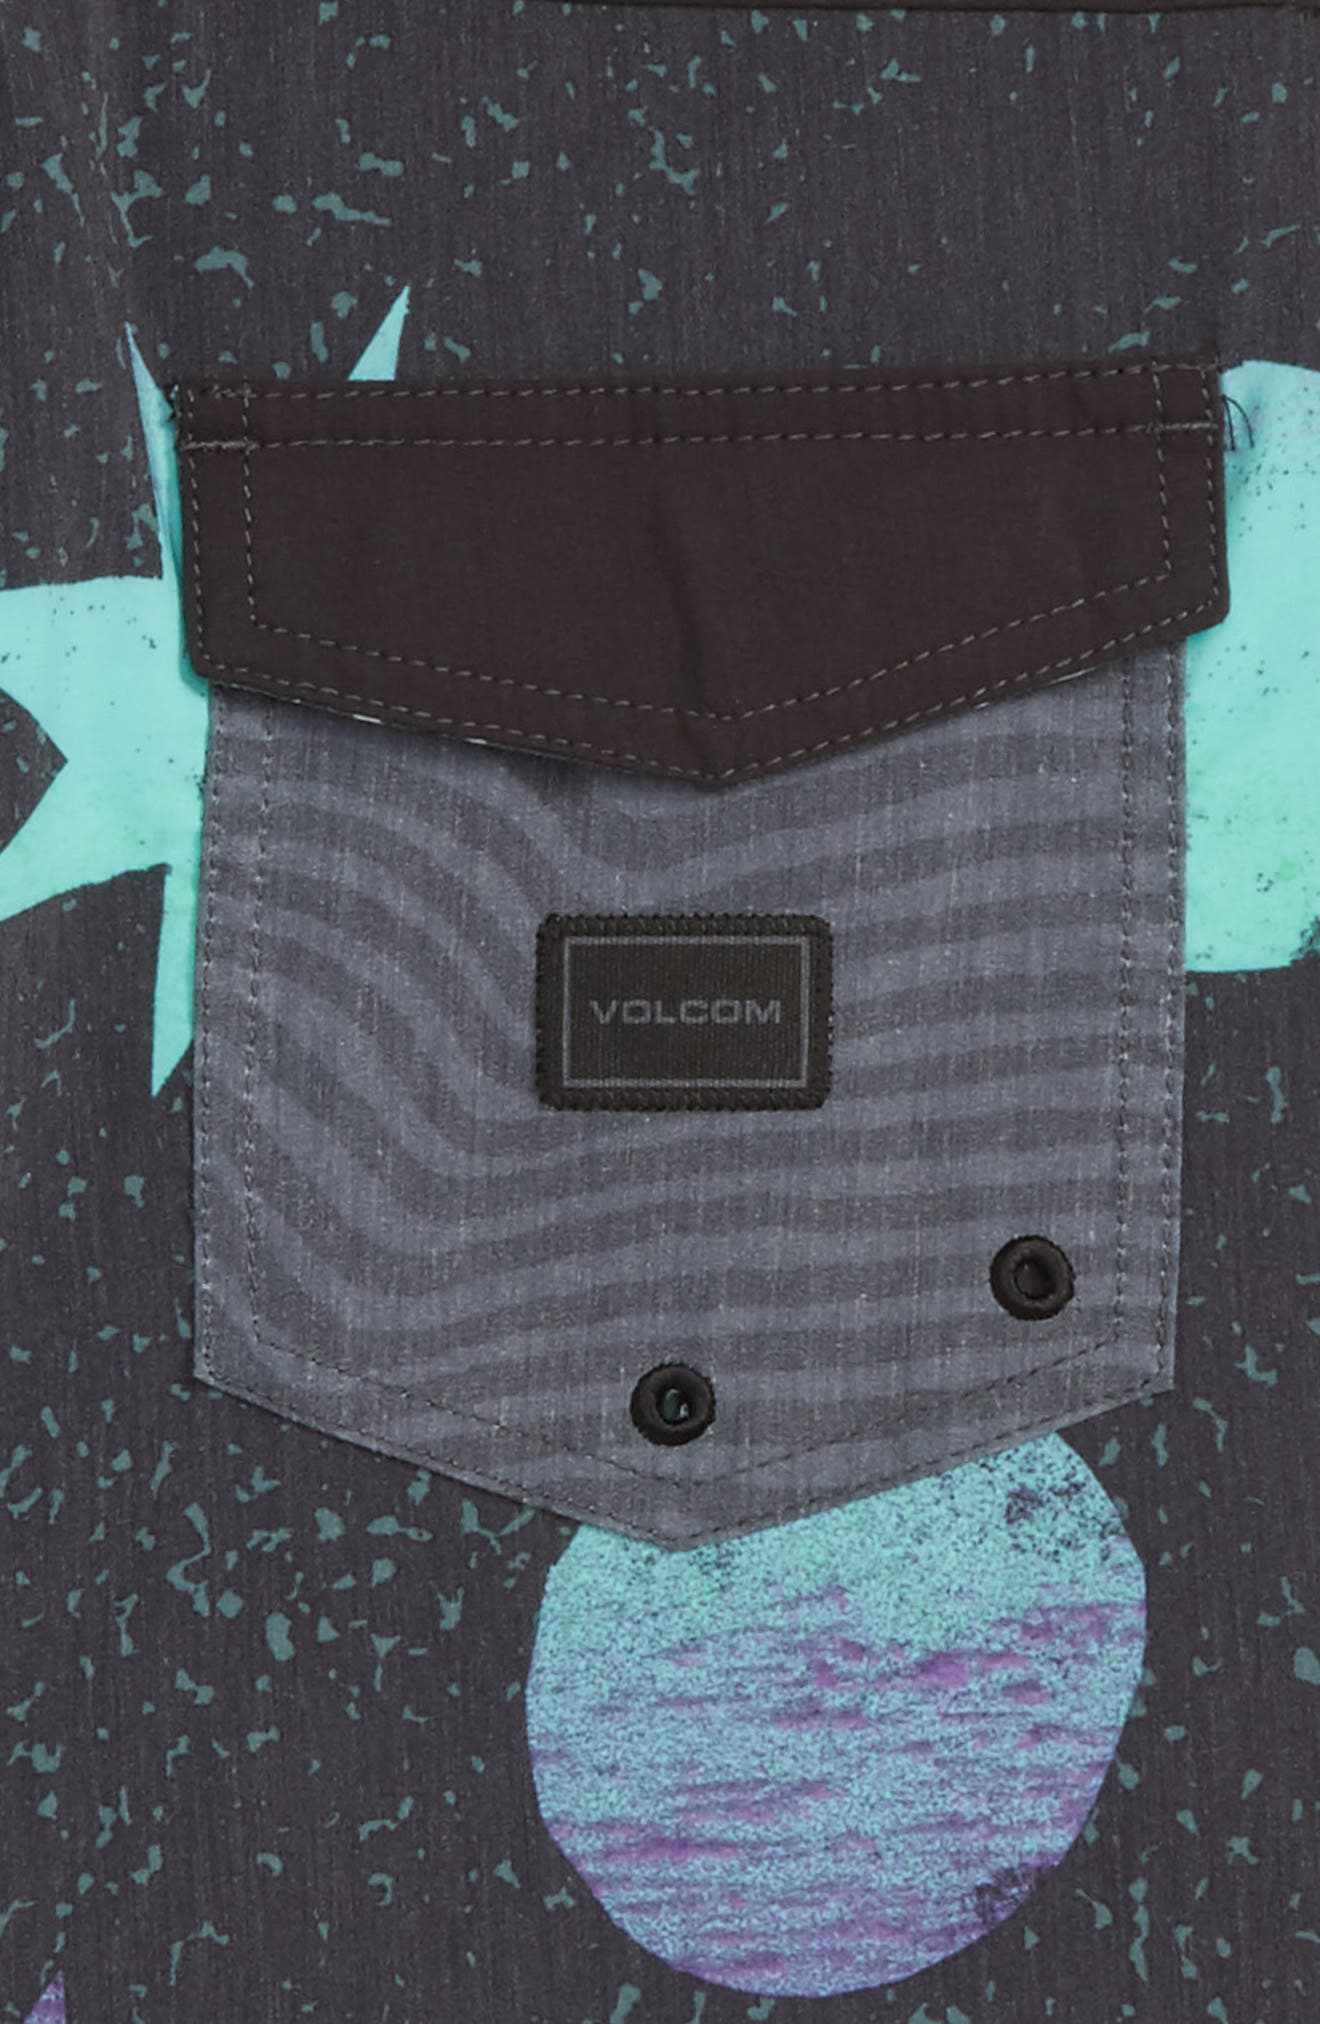 Magxplotion Board Shorts,                             Alternate thumbnail 3, color,                             001